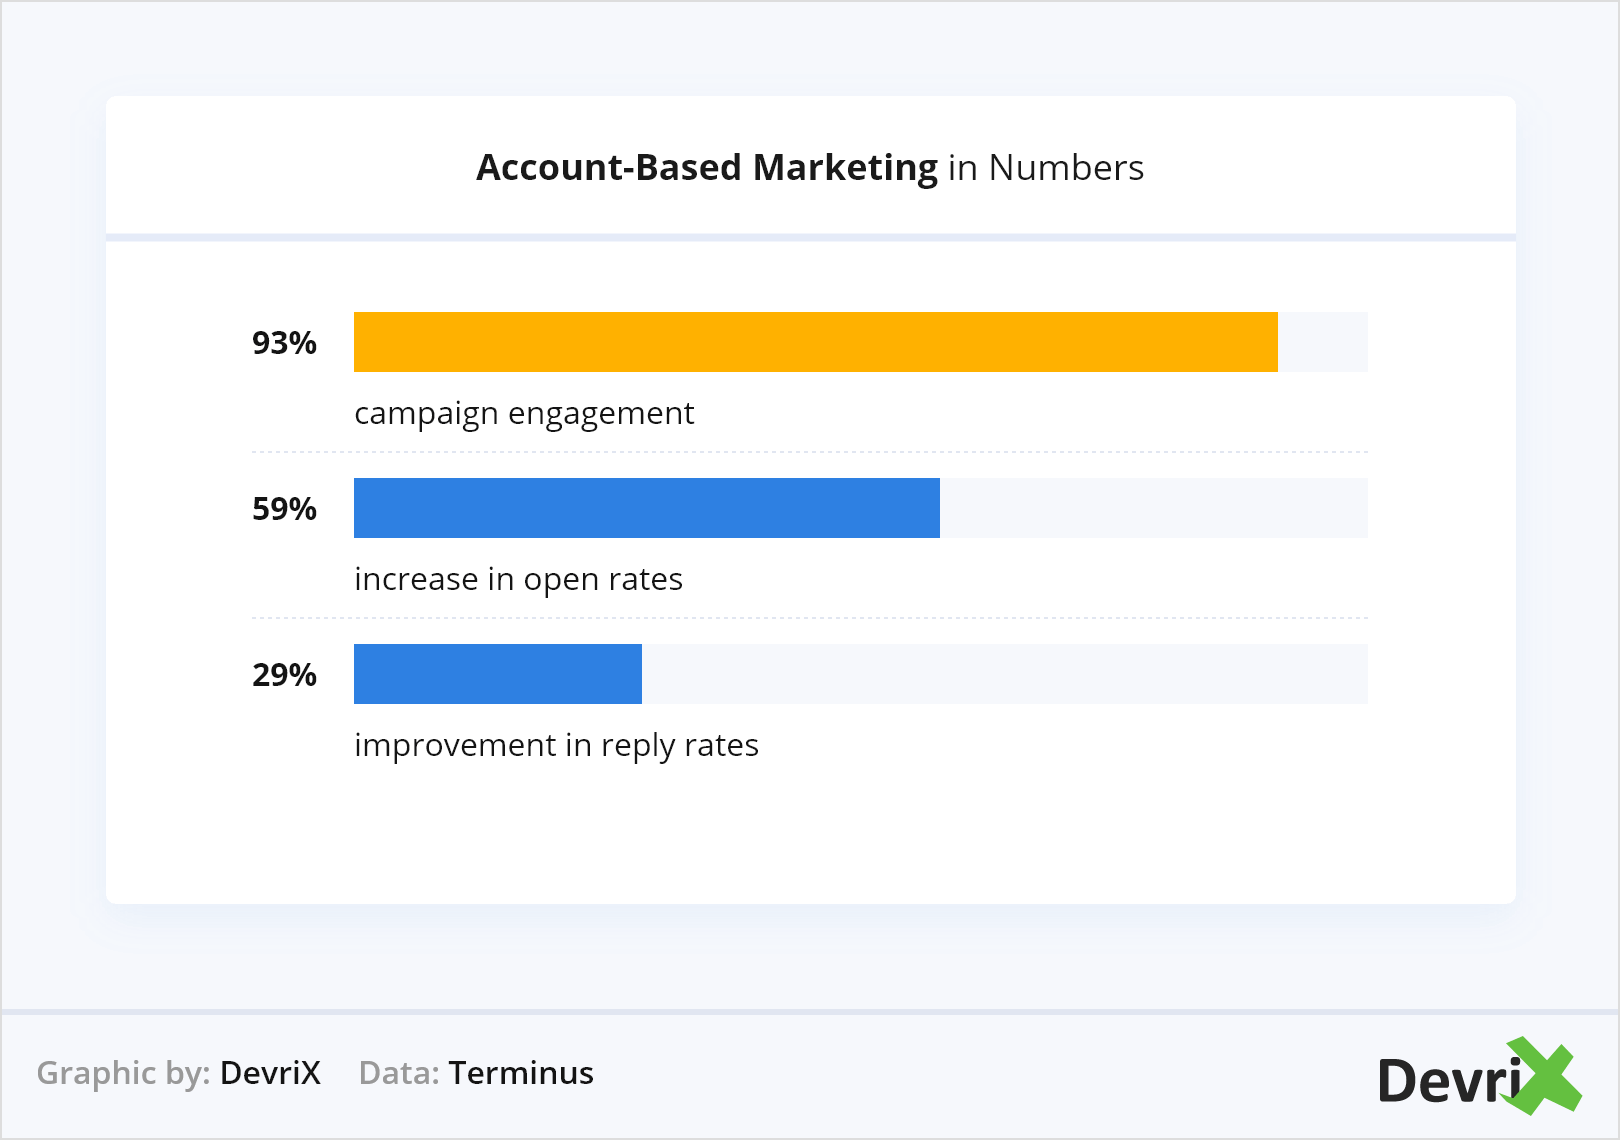 Account-Based Marketing in Numbers